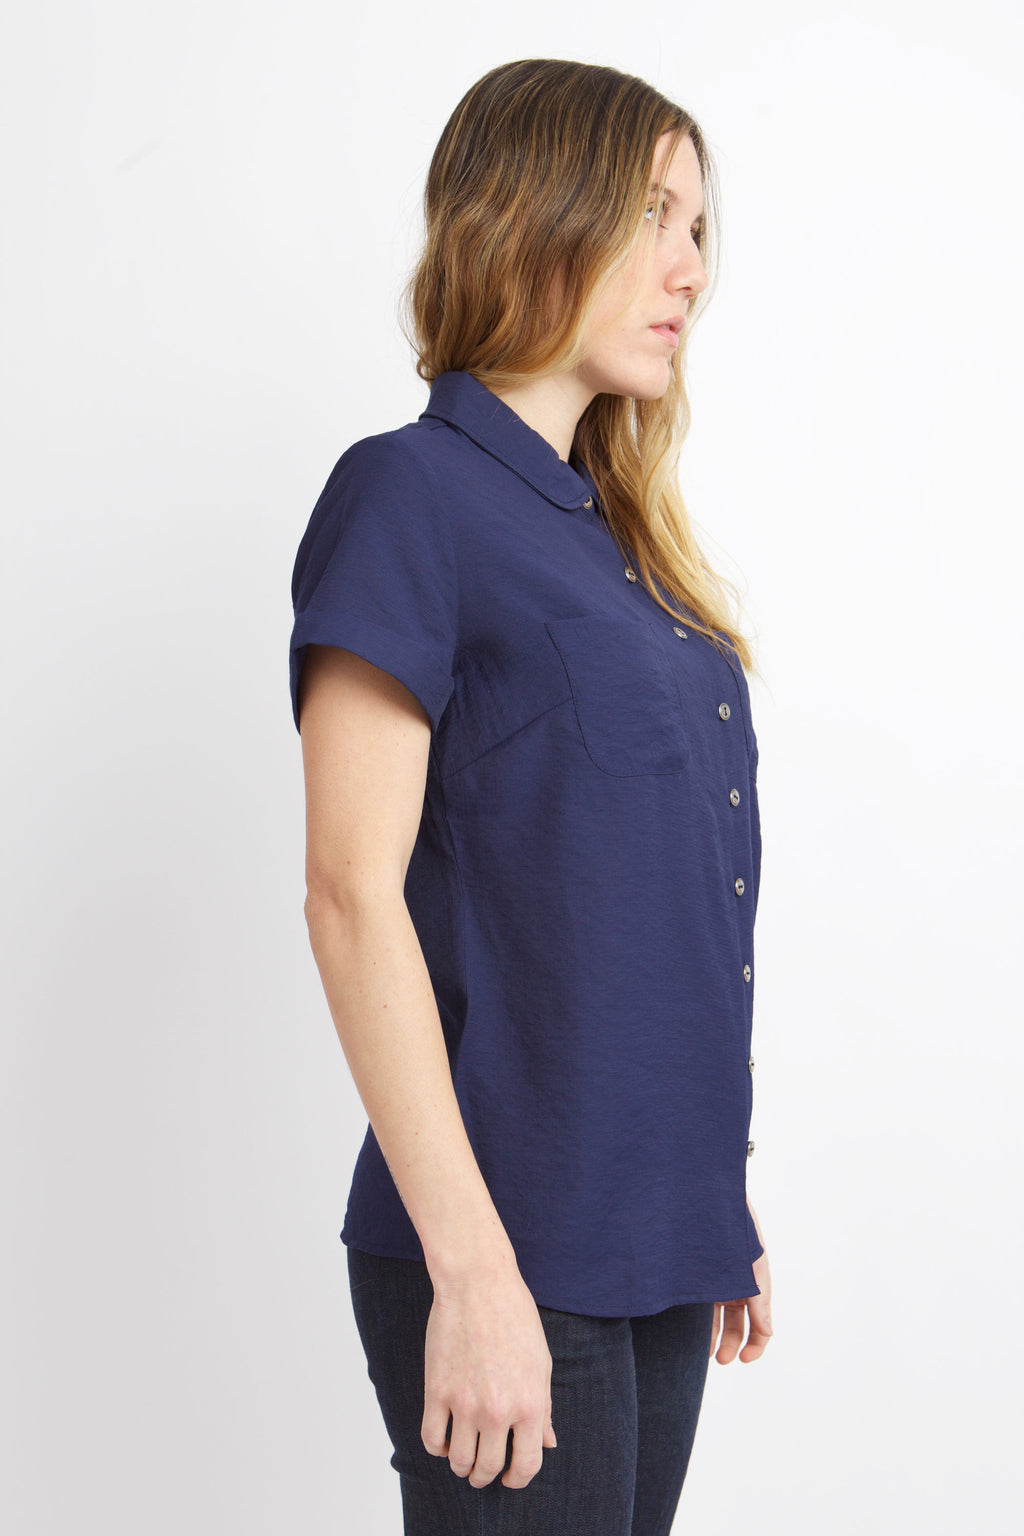 MEAGAN PETER PAN TOP W - BROOKLYN INDUSTRIES